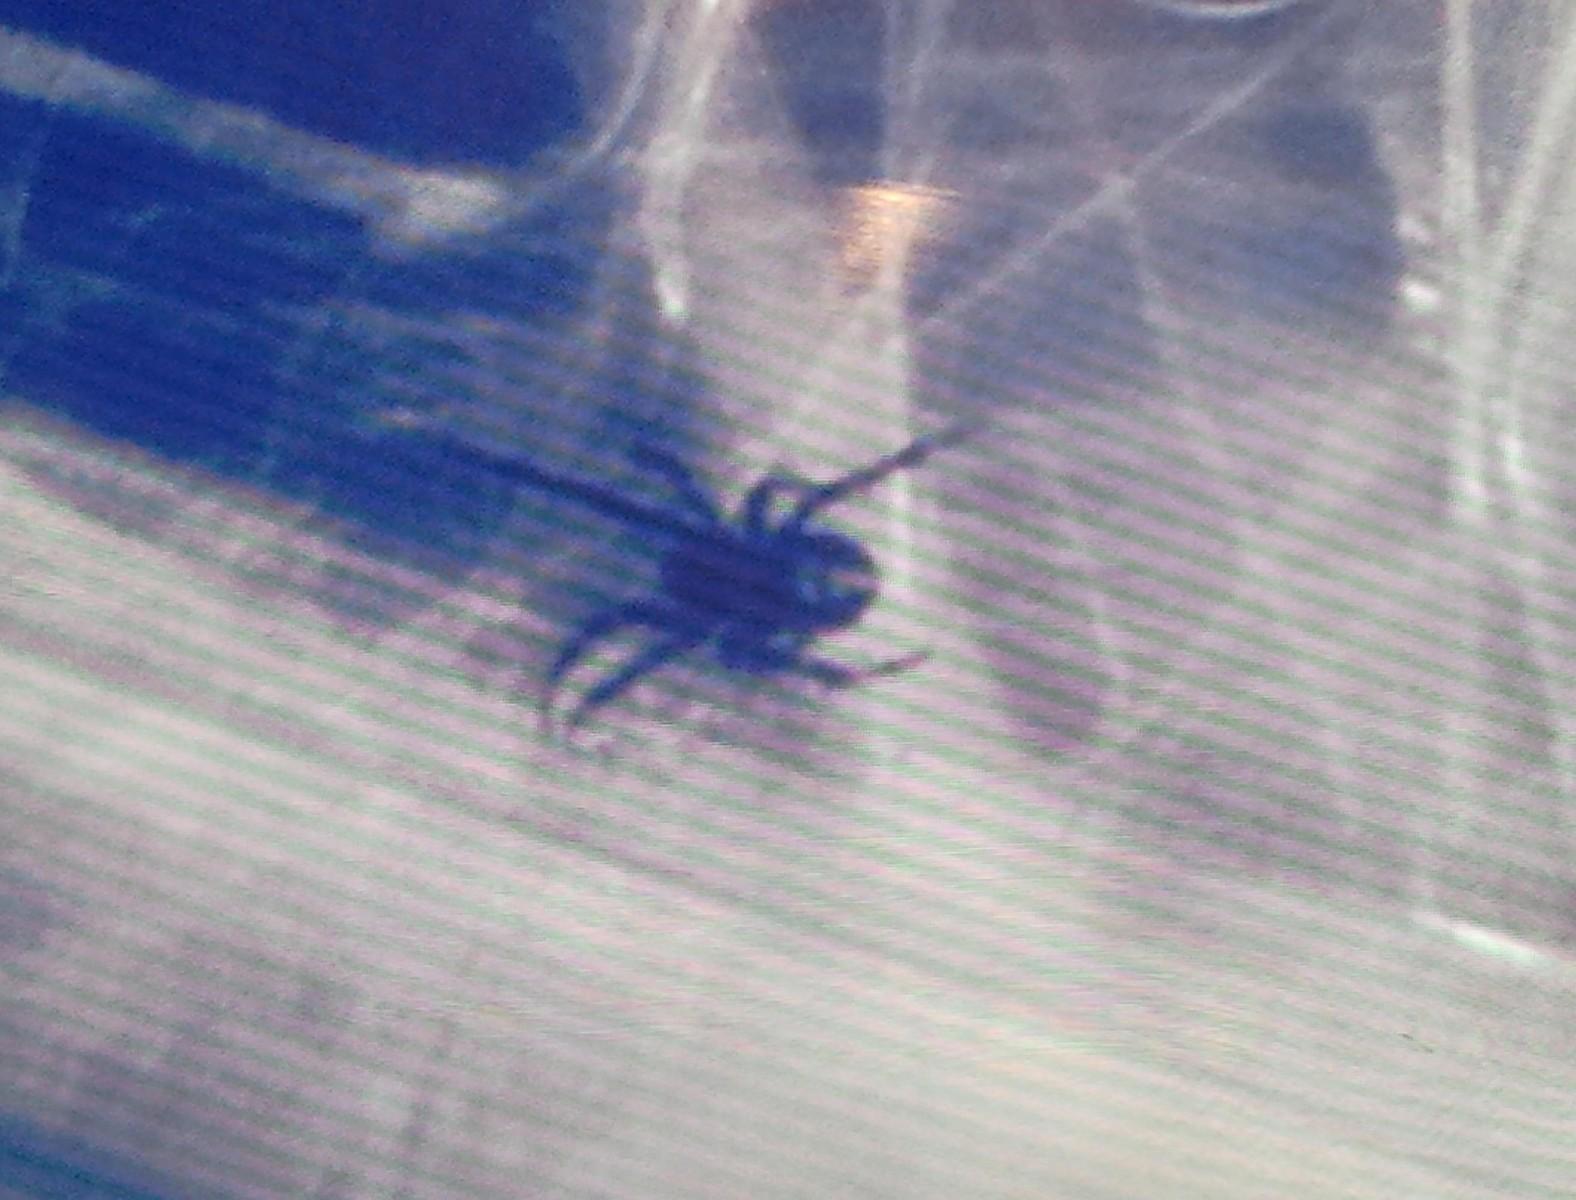 Hate spiders? Then you might want to know where this was found…